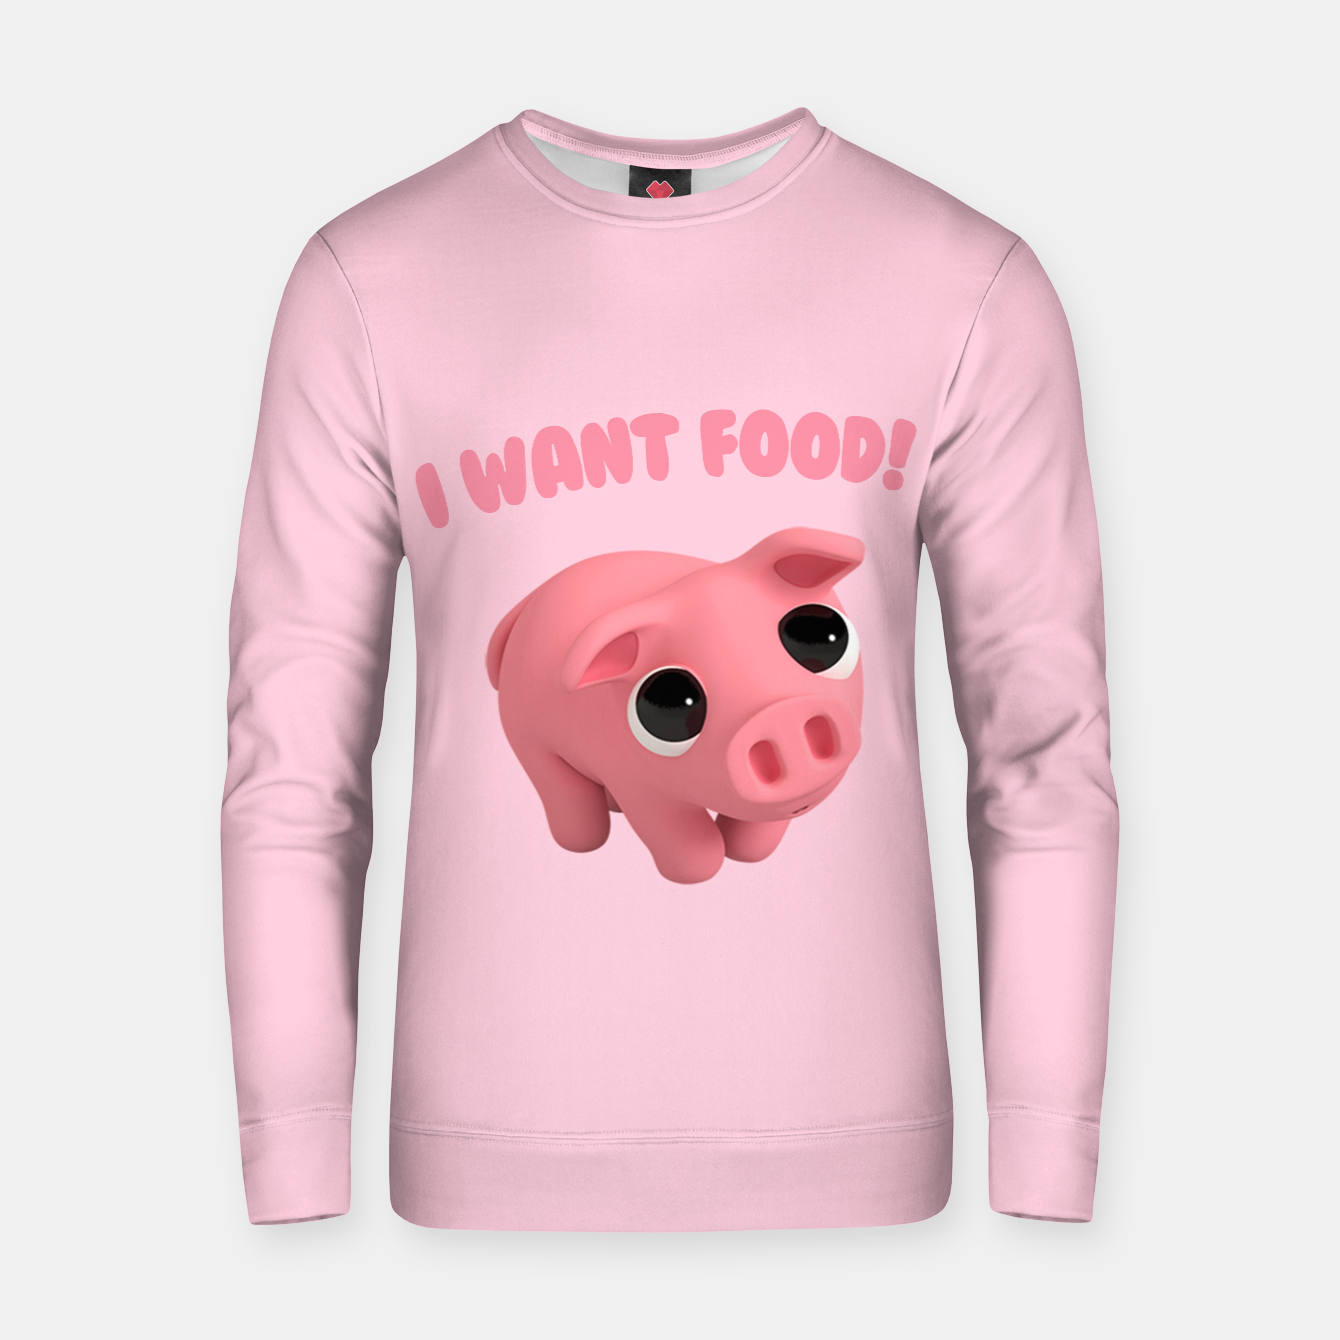 5da8174547cab1 Image of Rosa the Pig I WANT FOOD Cotton sweater - Live Heroes